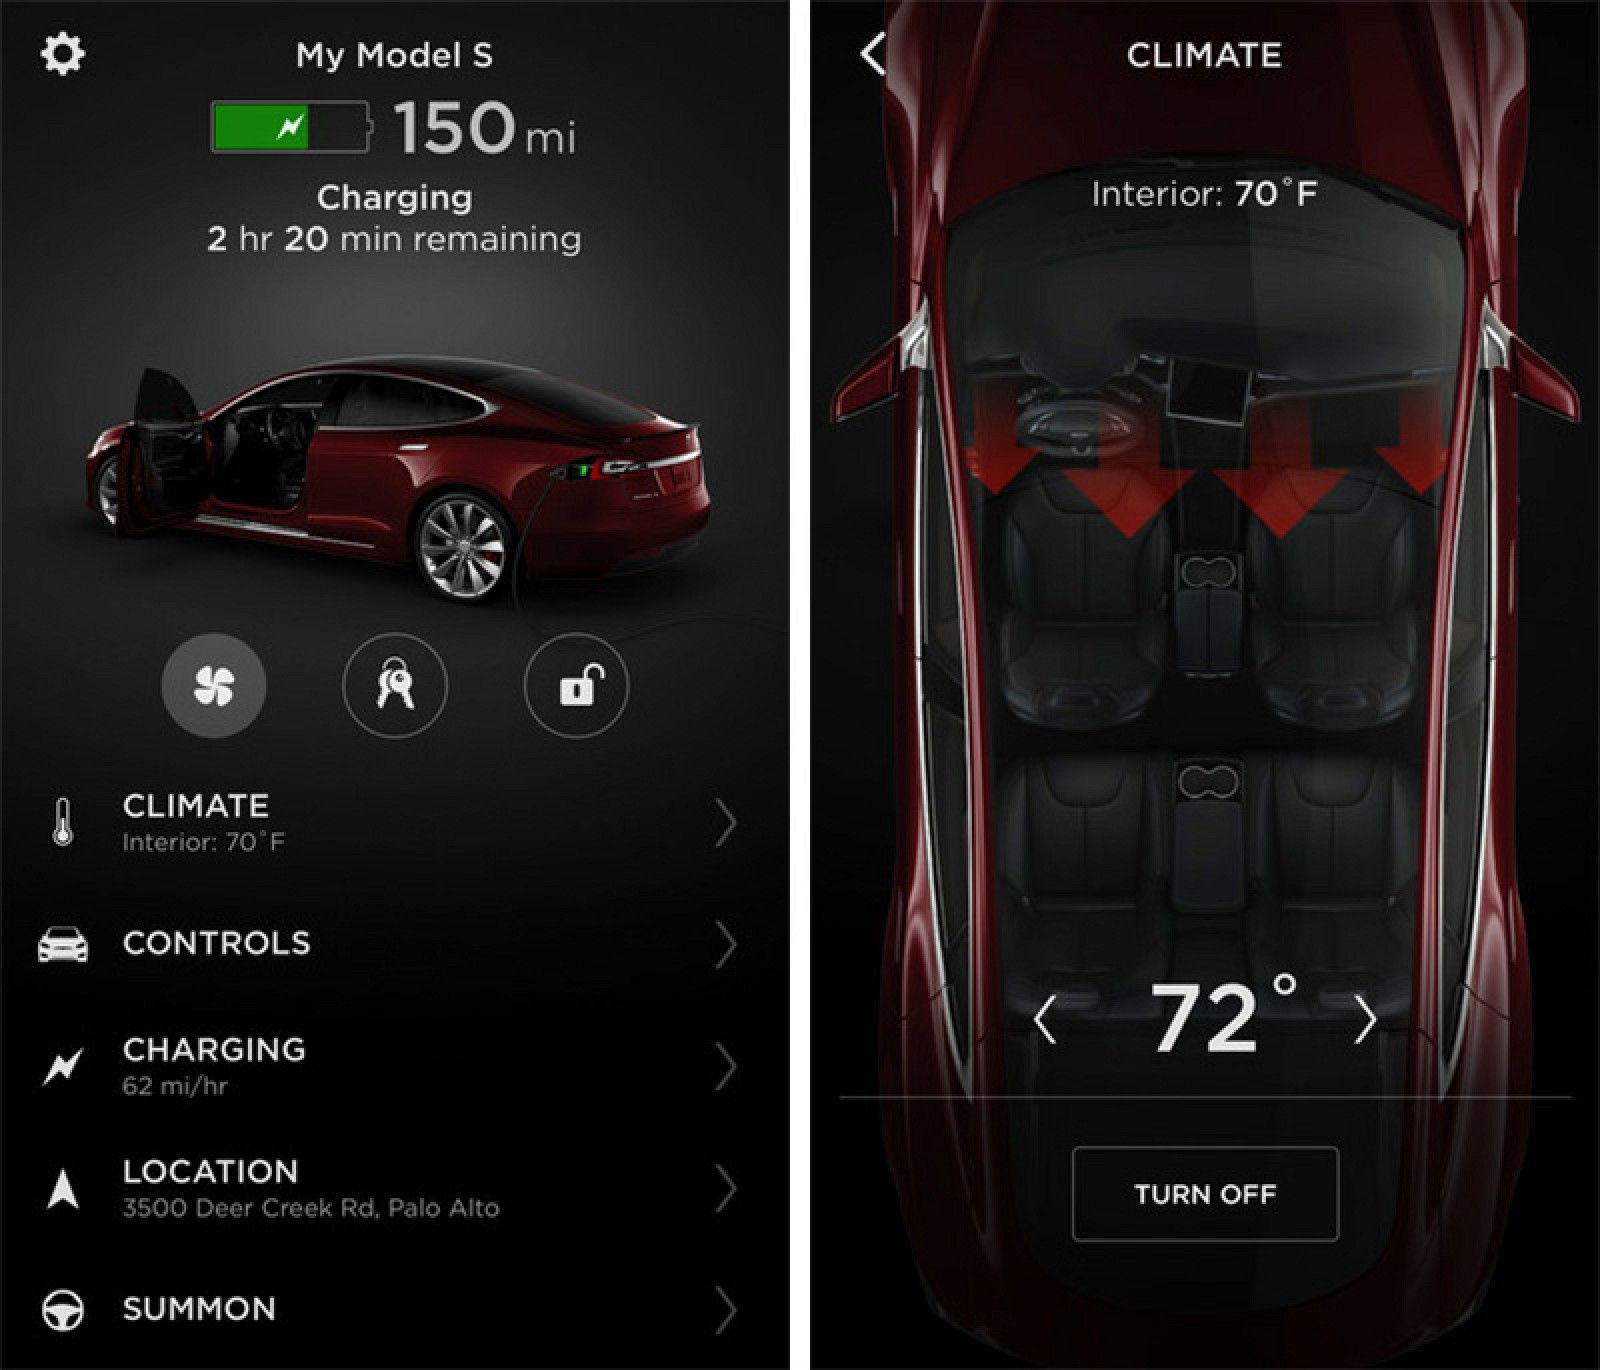 Tesla releases completely redesigned iphone app with touch